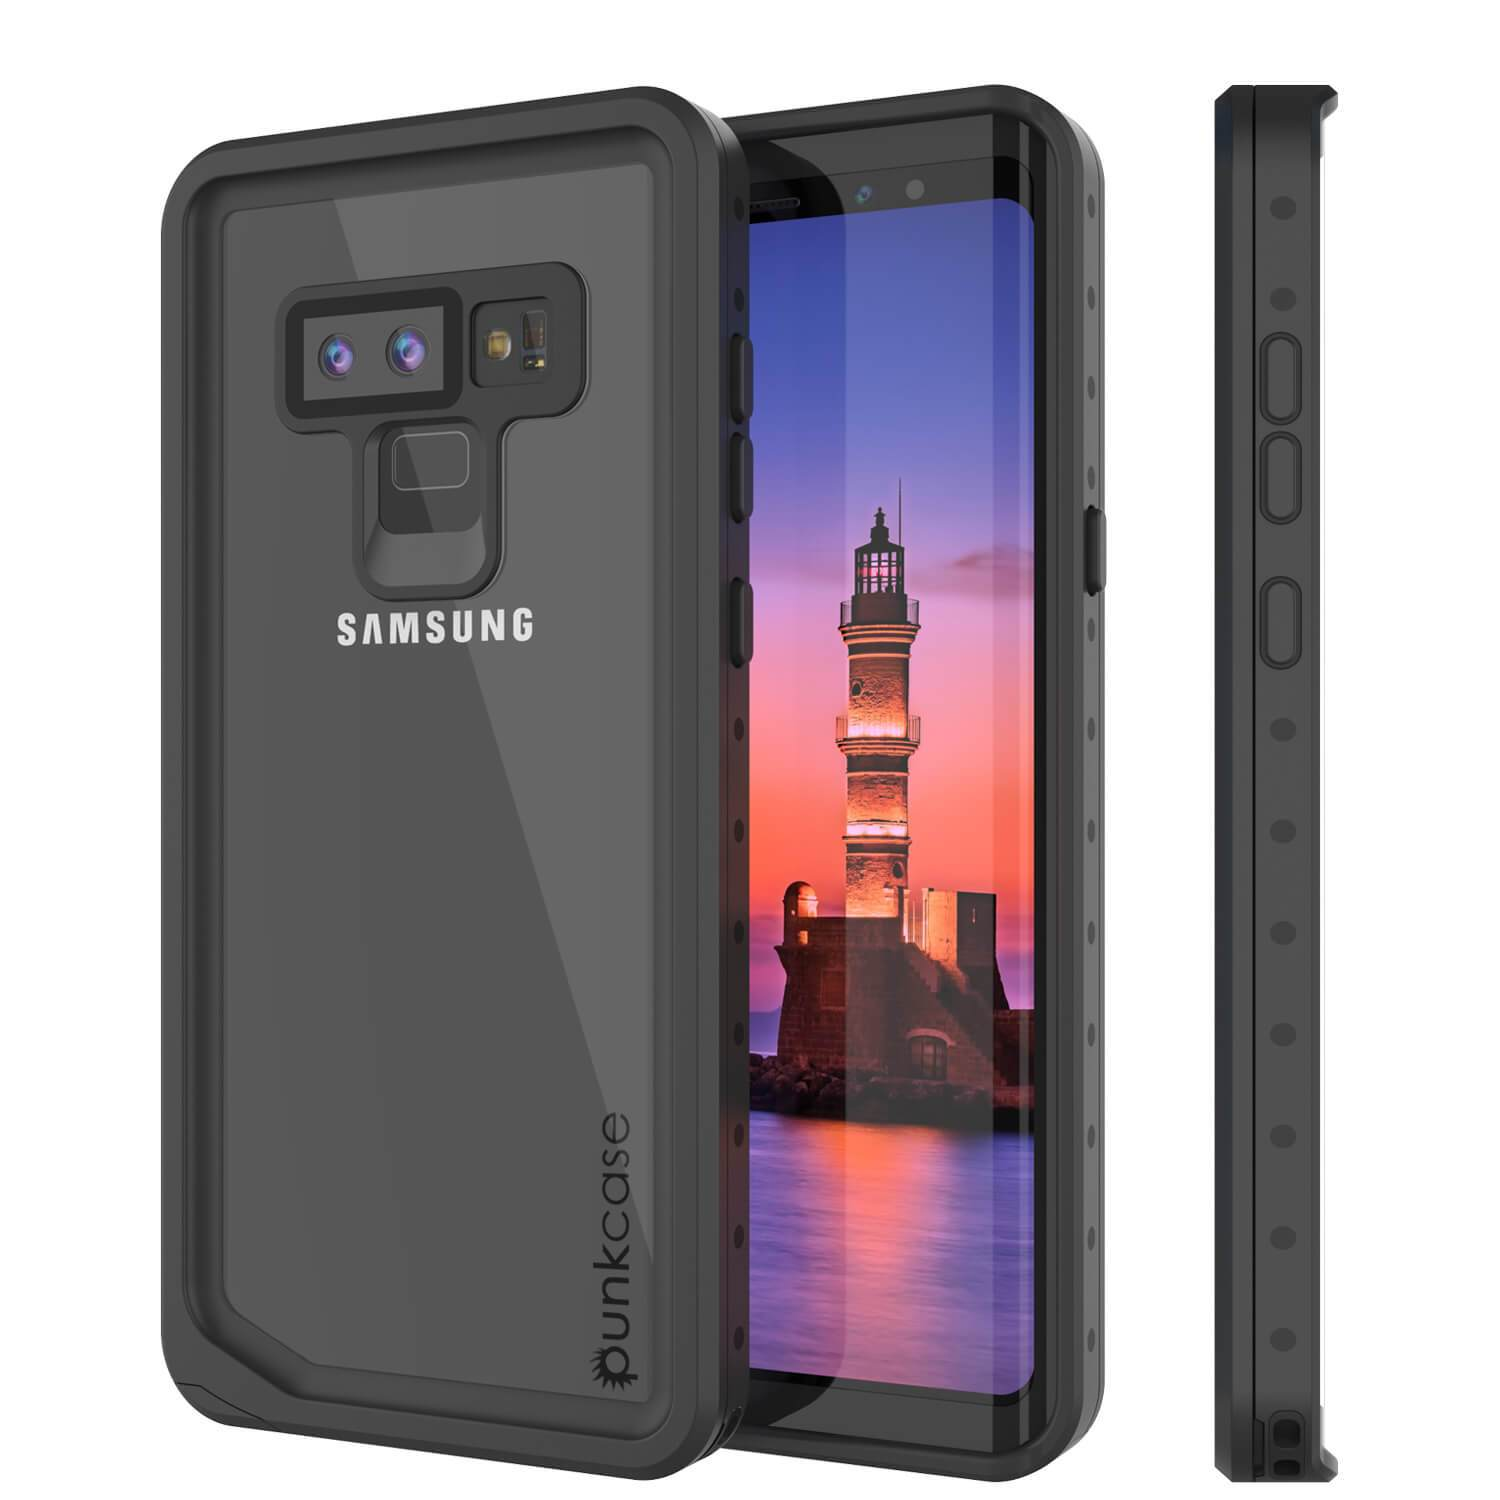 Galaxy Note 9 Waterproof Case PunkCase StudStar [CLEAR] Thin 6.6ft